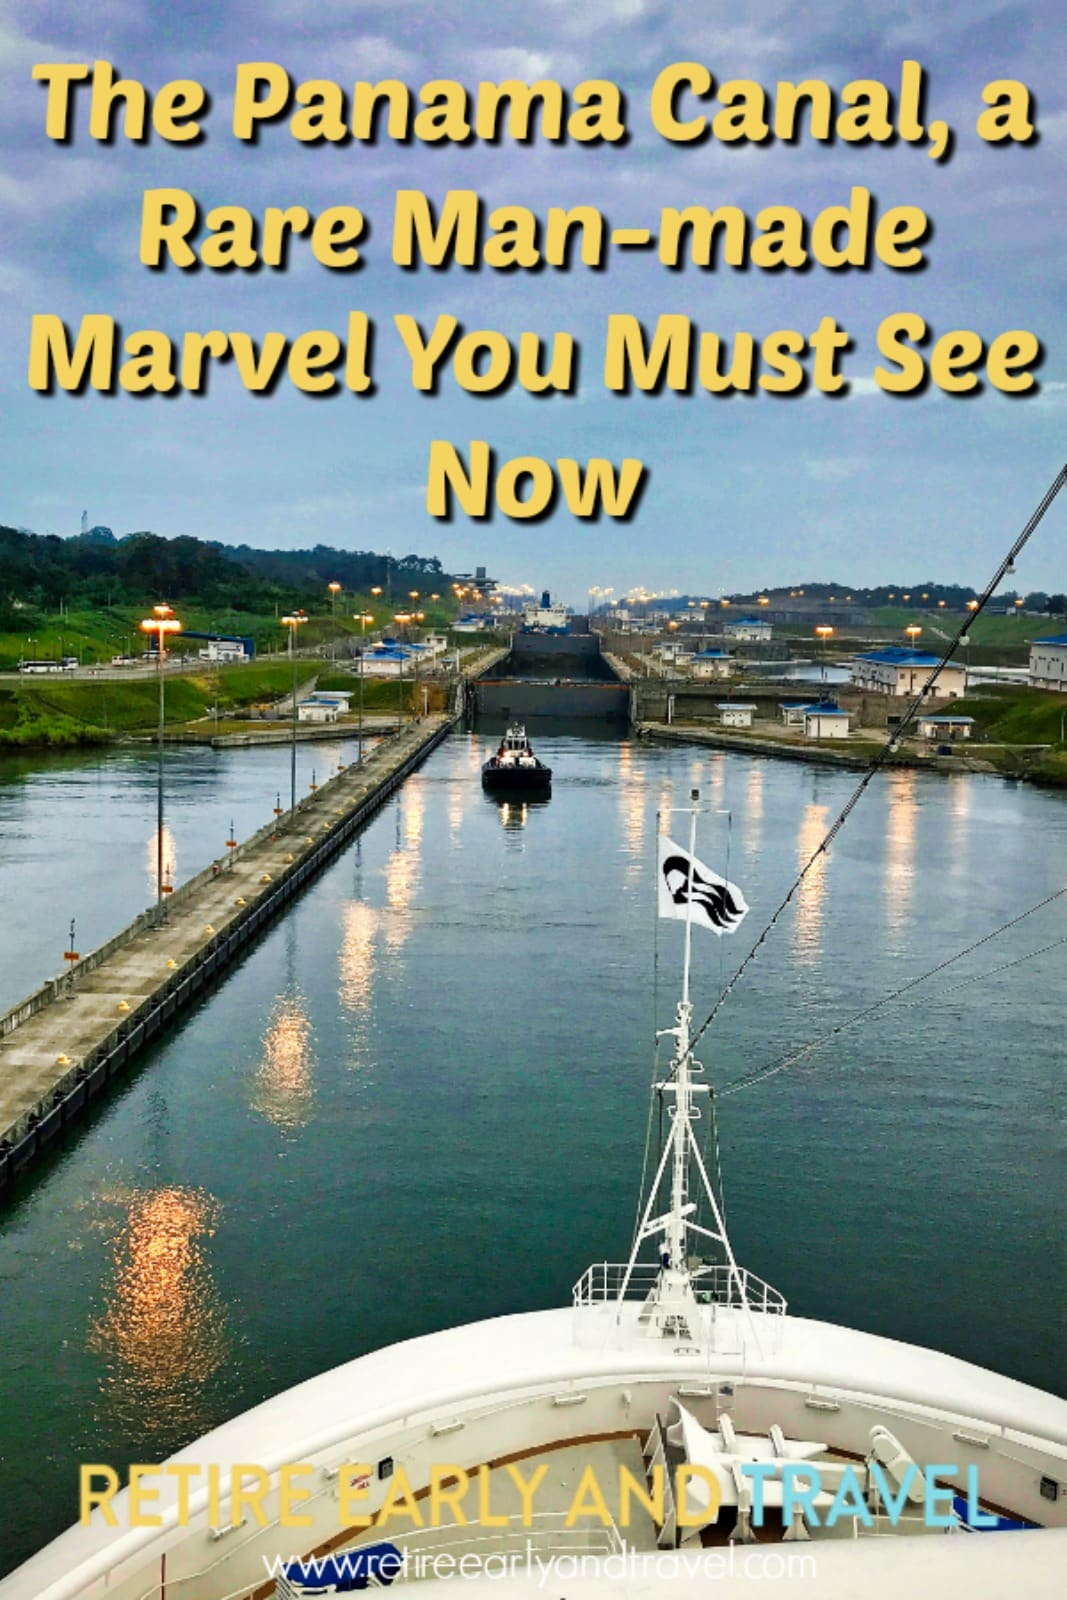 The Panama Canal, a Rare Man-made Marvel You Must See Now